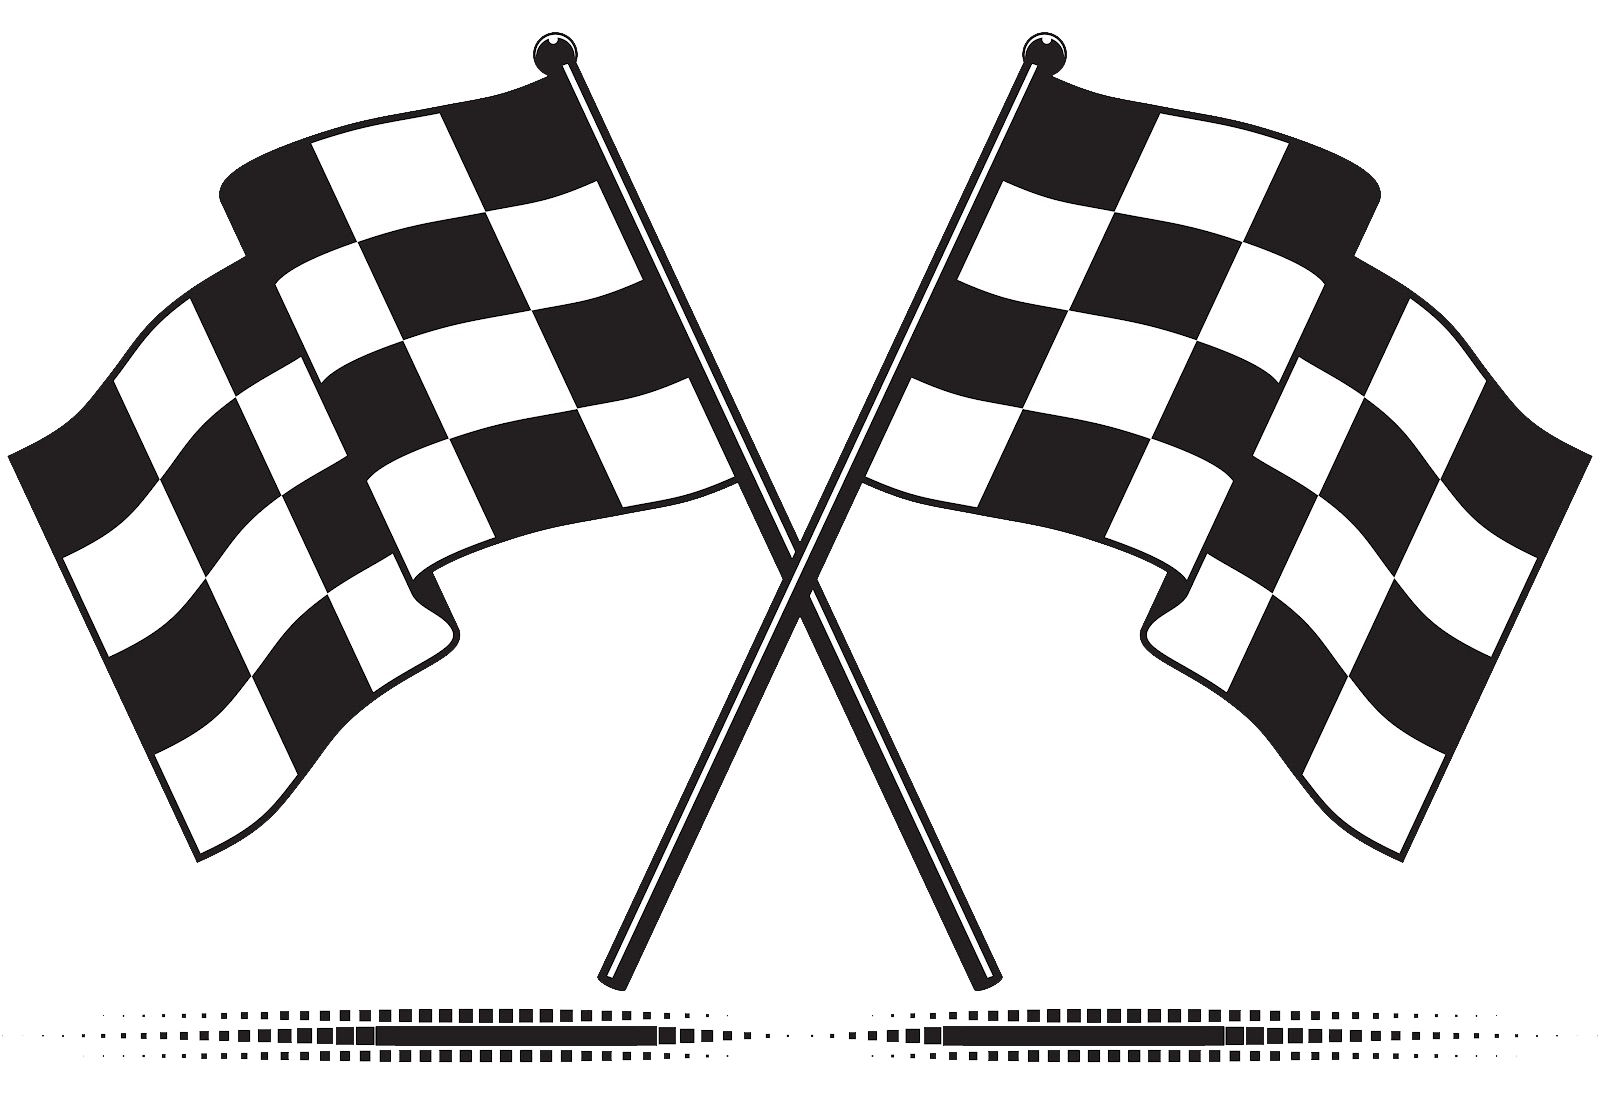 Illustration Stock Logo De Voiture Image50683558 together with Racing Flag Stand Clipart also Gun 20clipart 20bomb besides Alphabet Tracing Letter N Clip Art 24676 together with Stock Images Clean Energy Environment Icons Image28403324. on car stock illustration